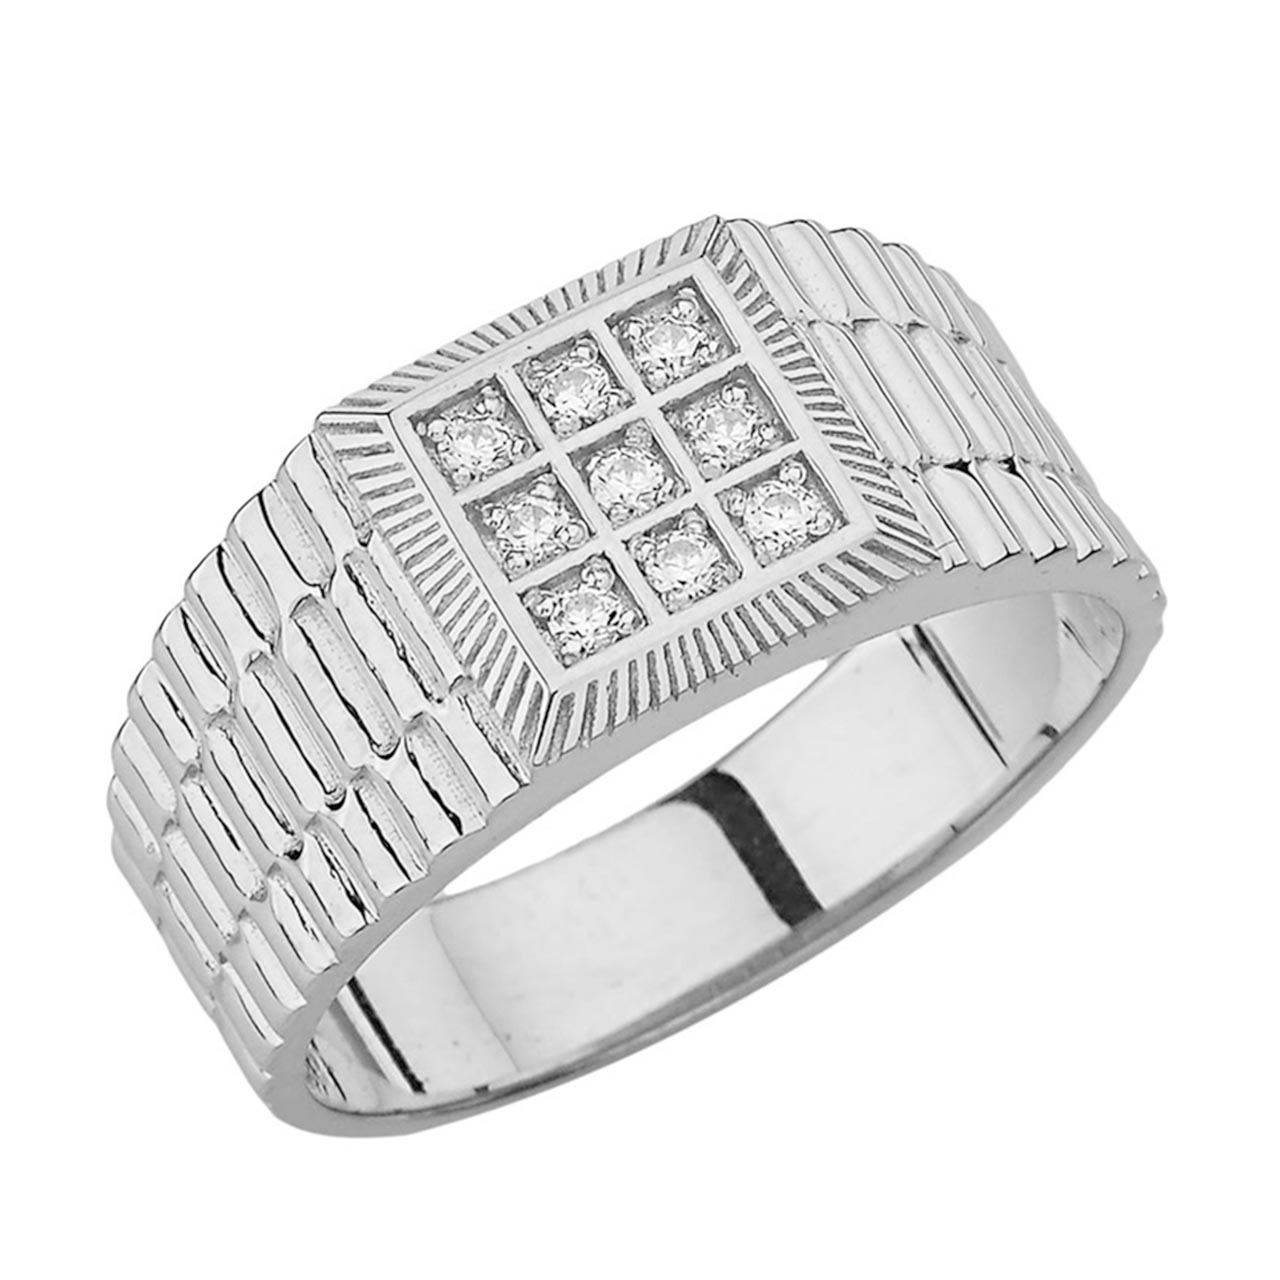 Men's Diamond Watchband Design Ring in Sterling Silver